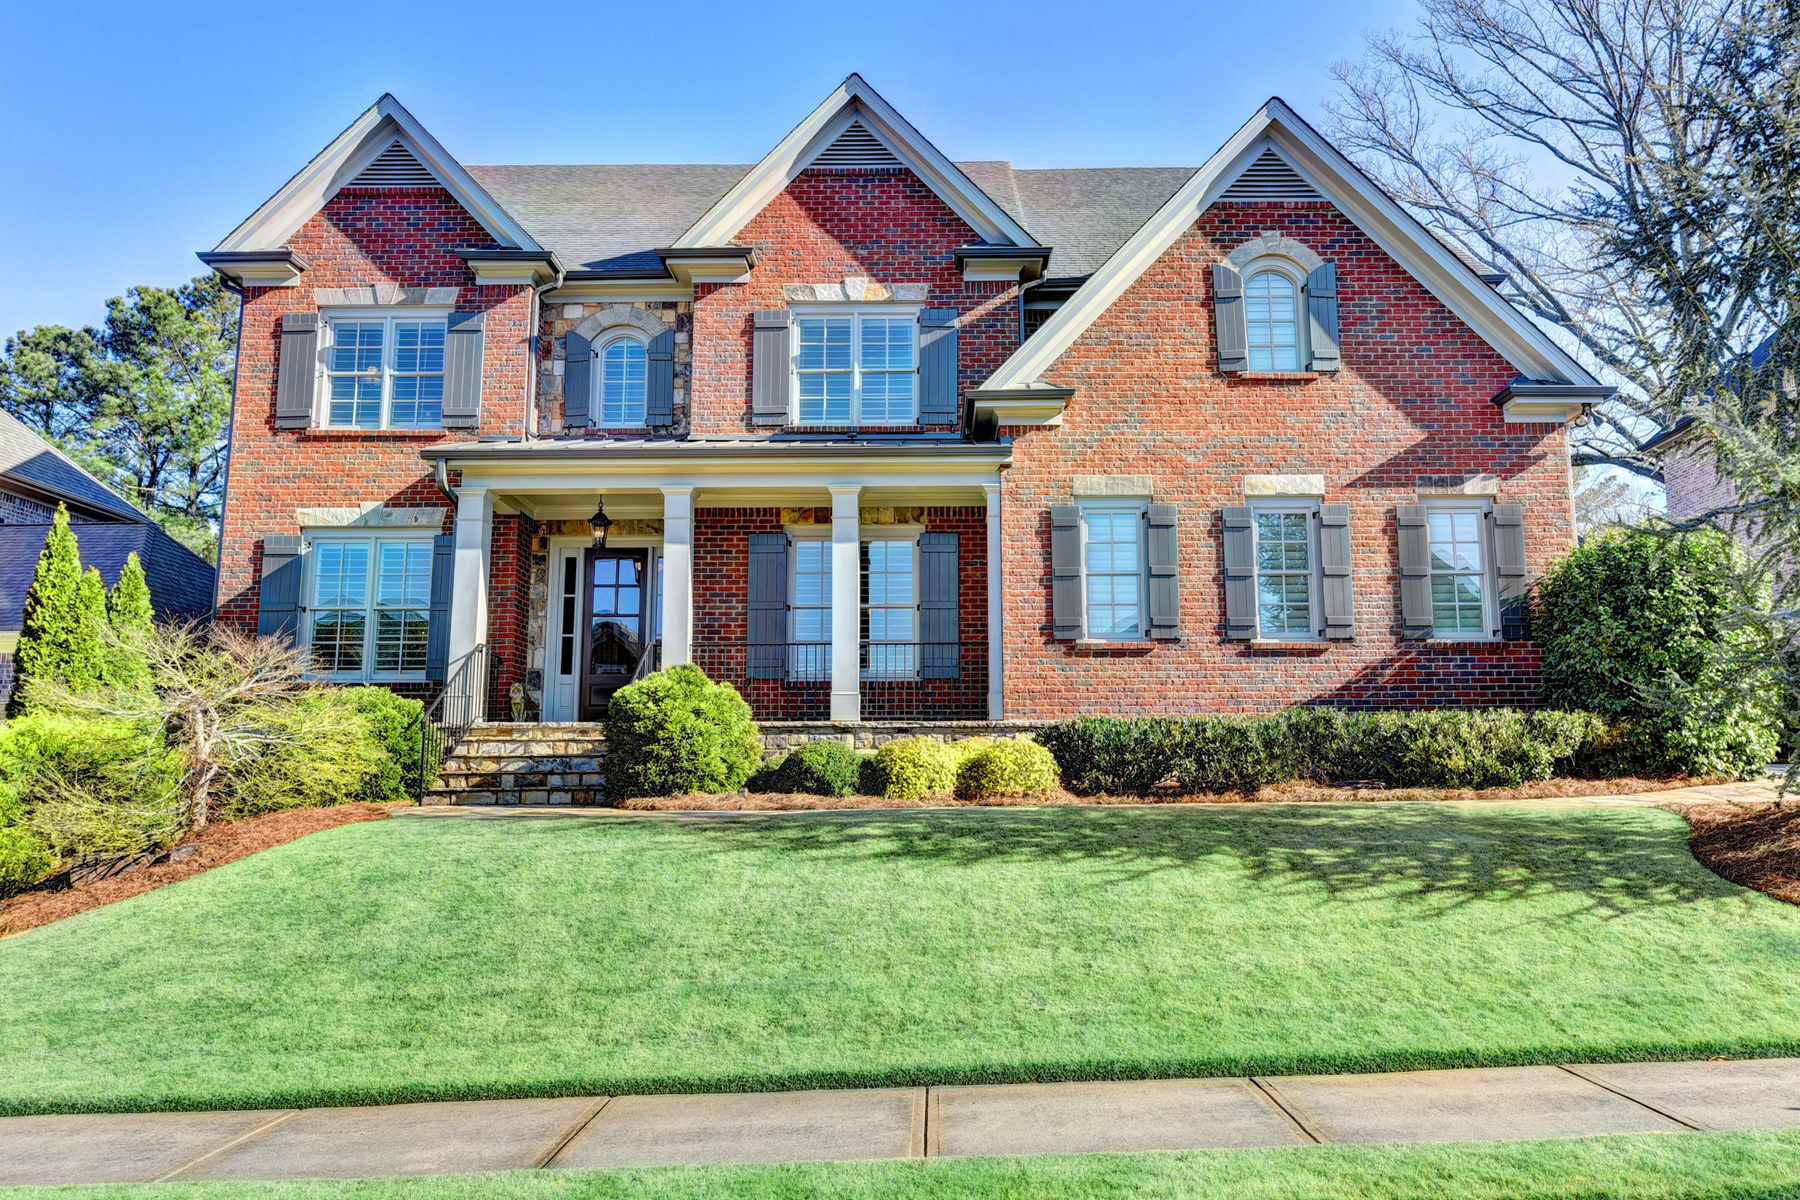 一戸建て のために 売買 アット Stunning Craftsman Home In Gated Community 5256 Creek Walk Circle Peachtree Corners, ジョージア 30092 アメリカ合衆国